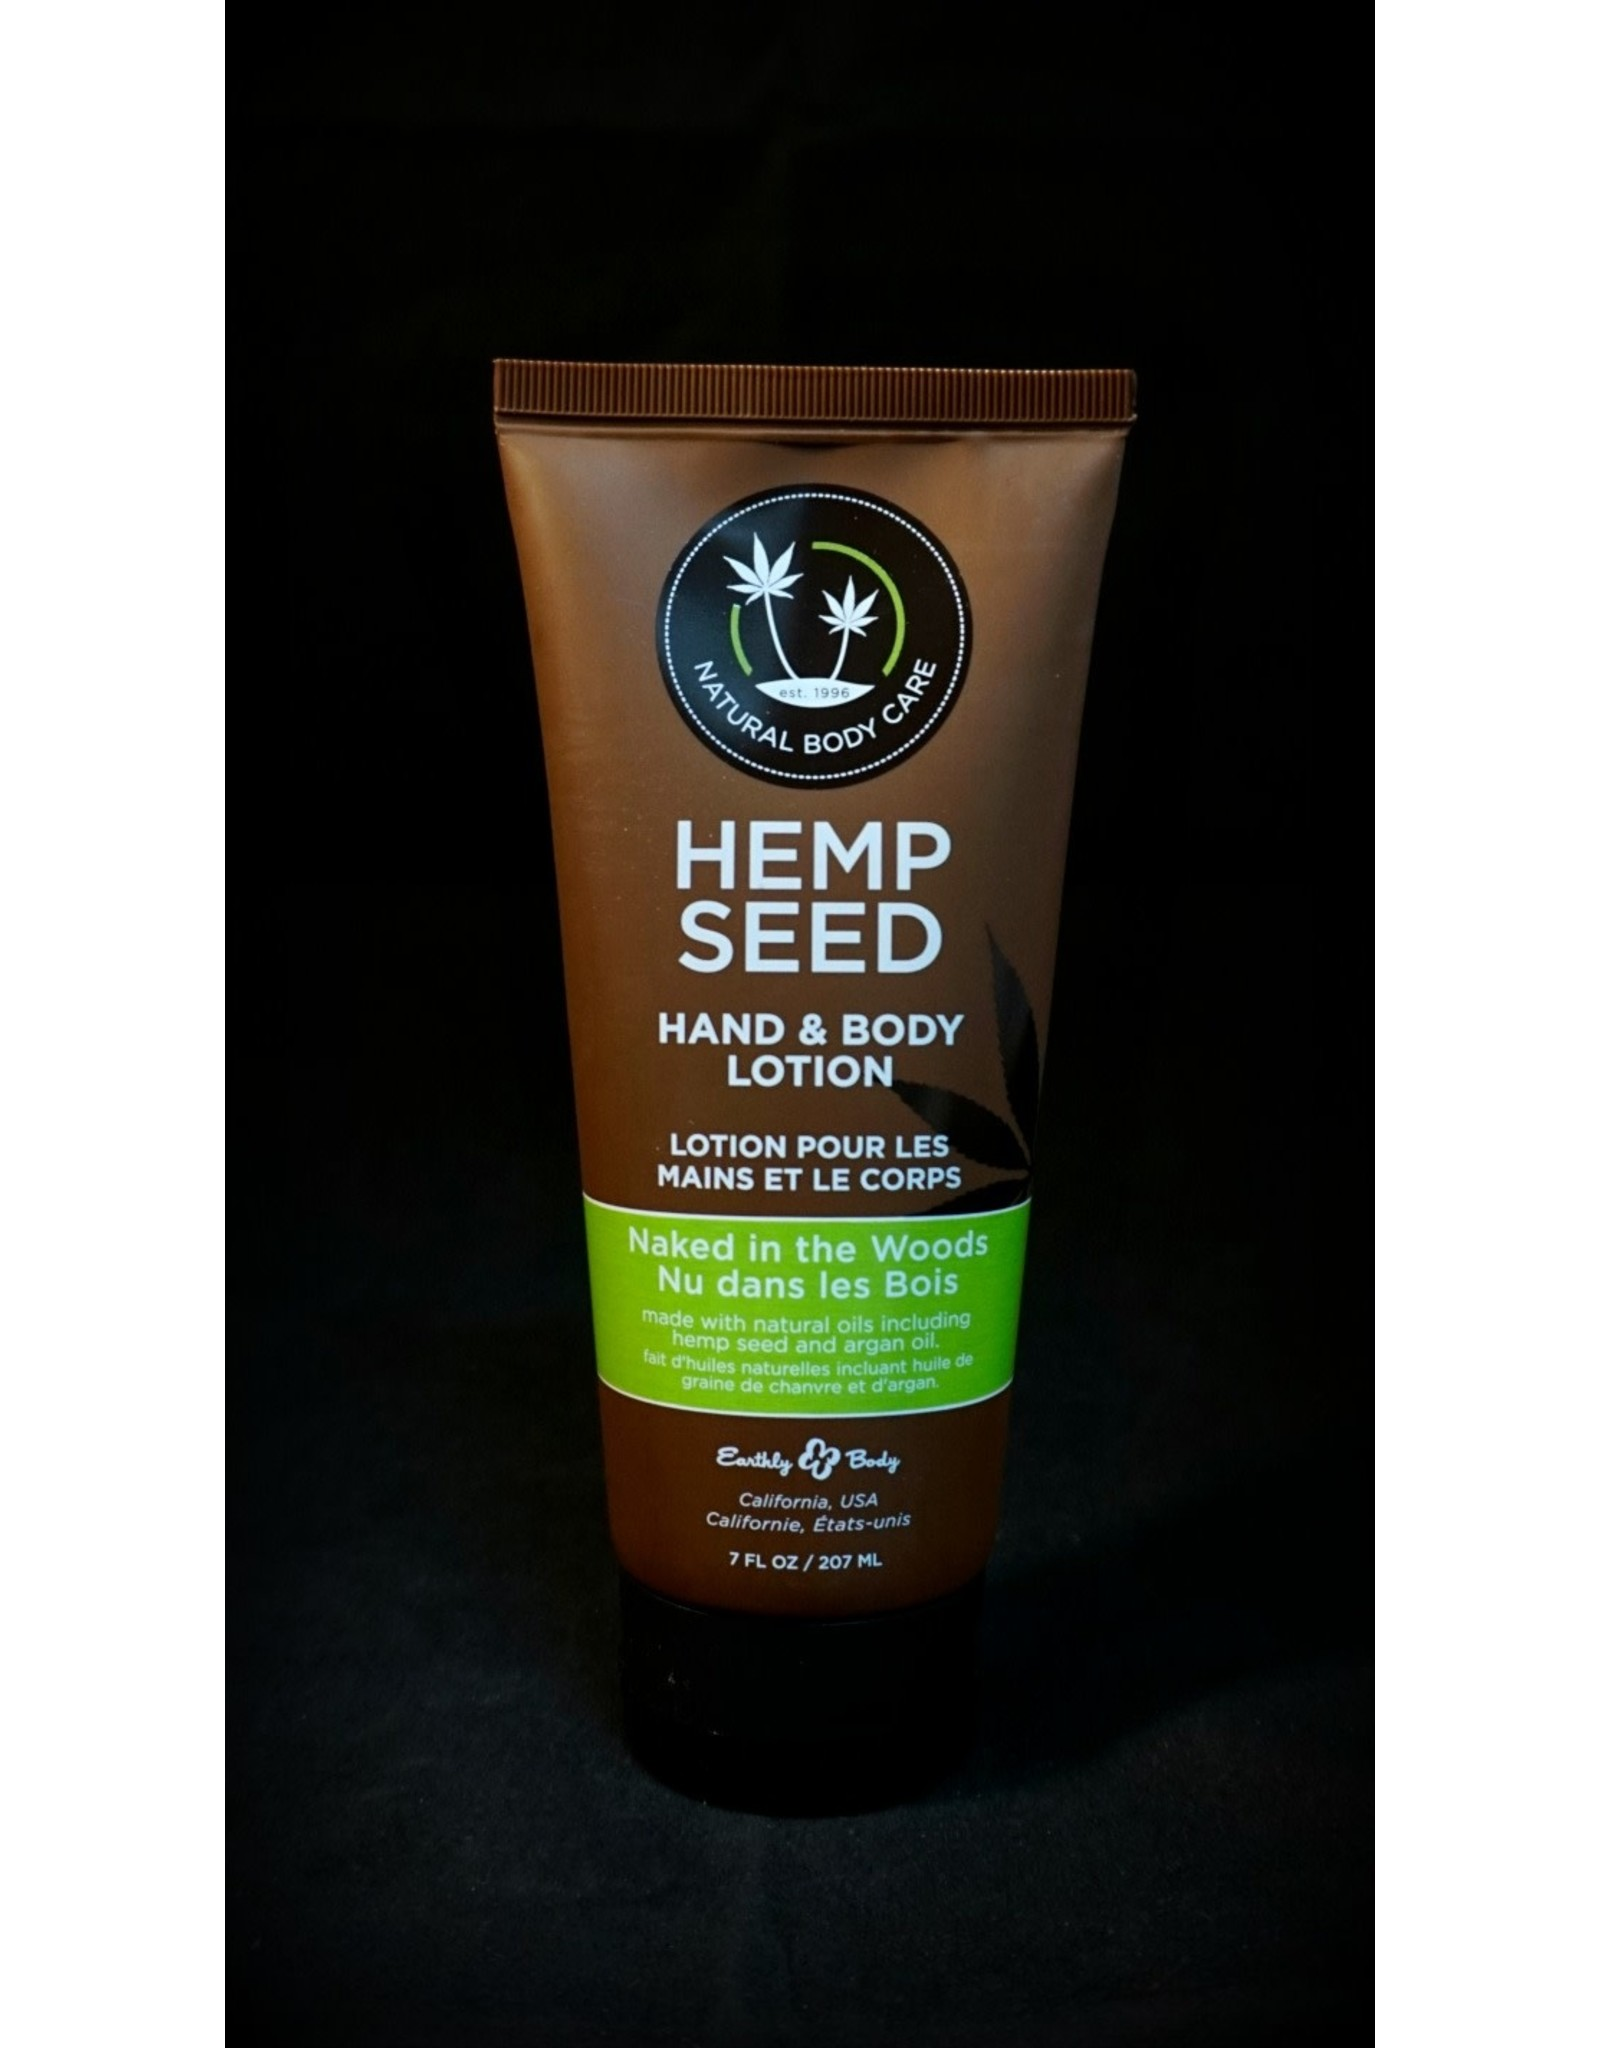 Earthly Hemp Seed Body Lotion 7oz Naked in the Woods